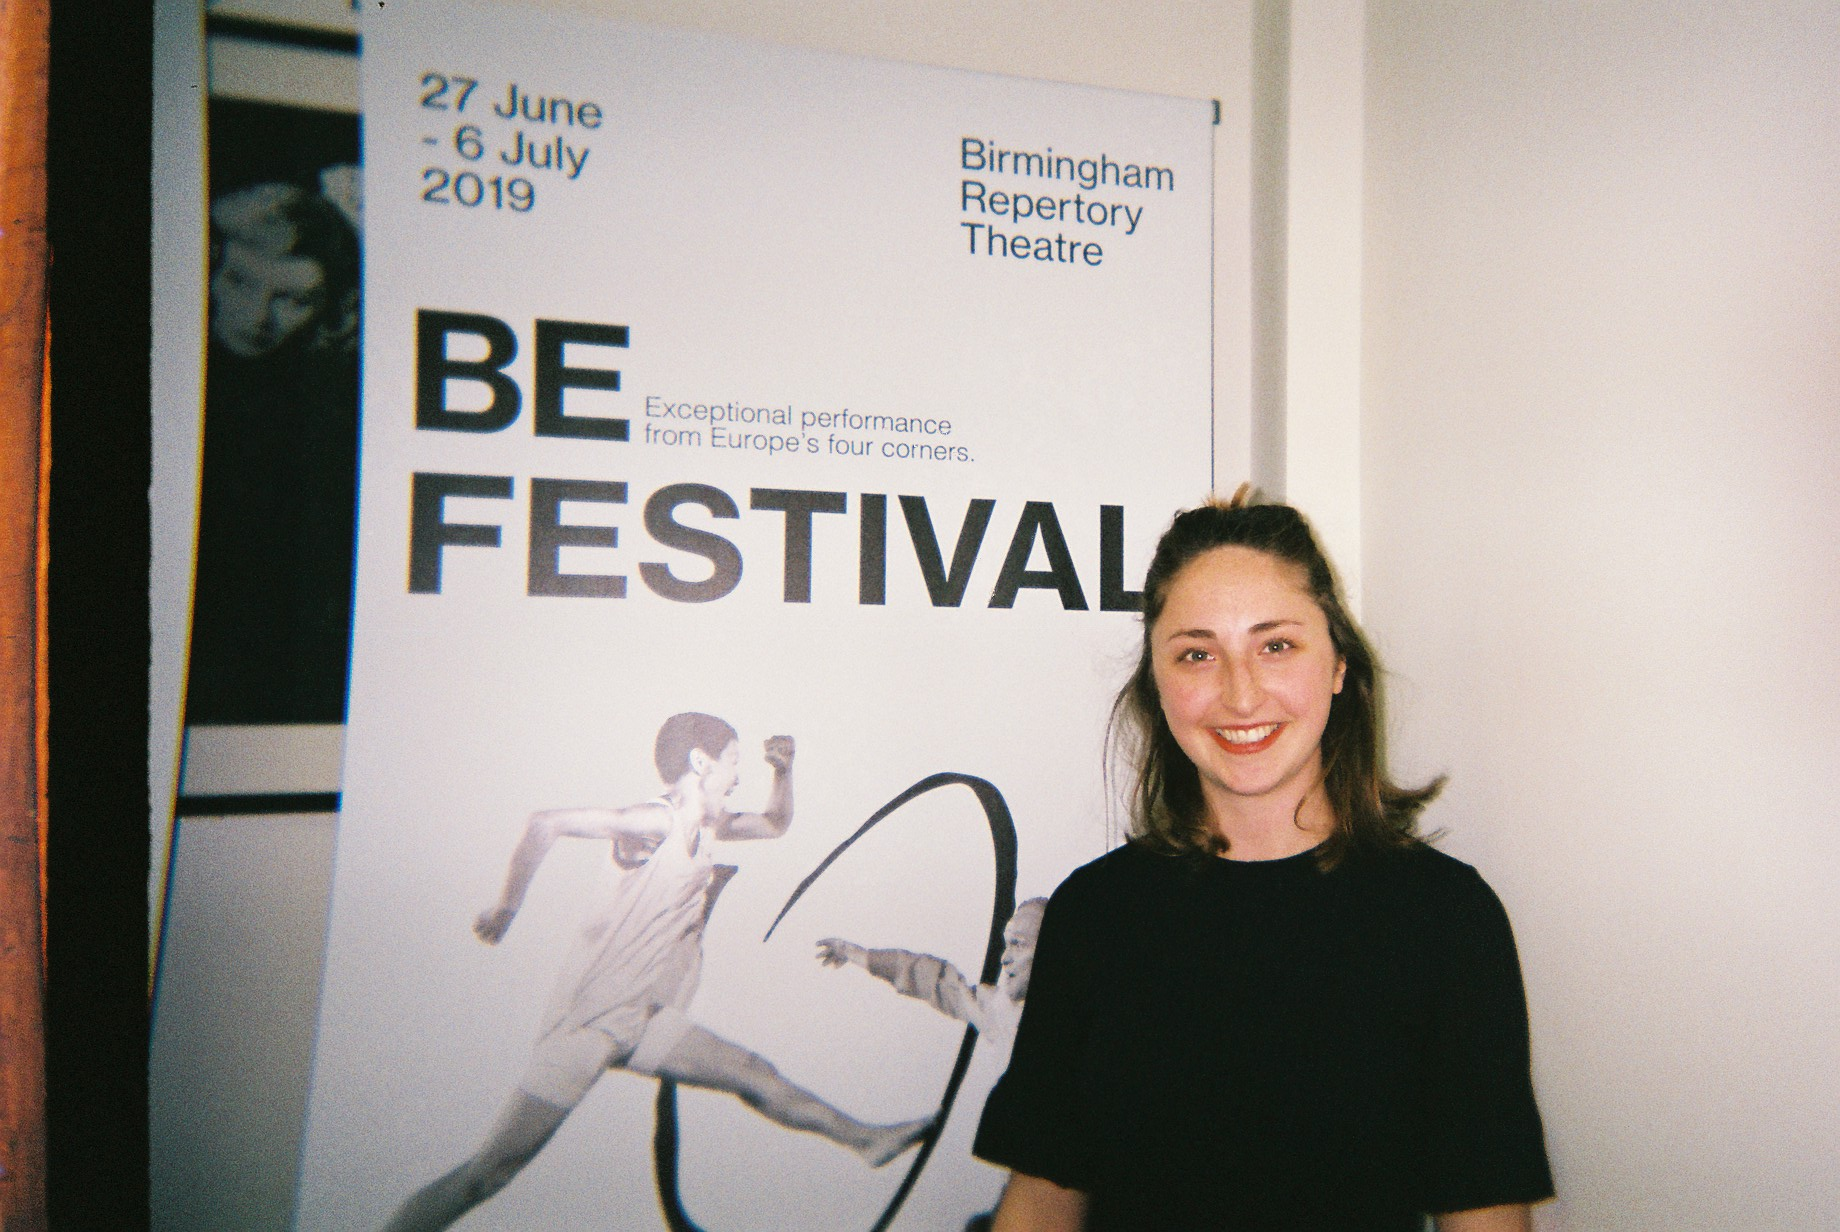 Cat Butler smiles in front of a BE Festival poster